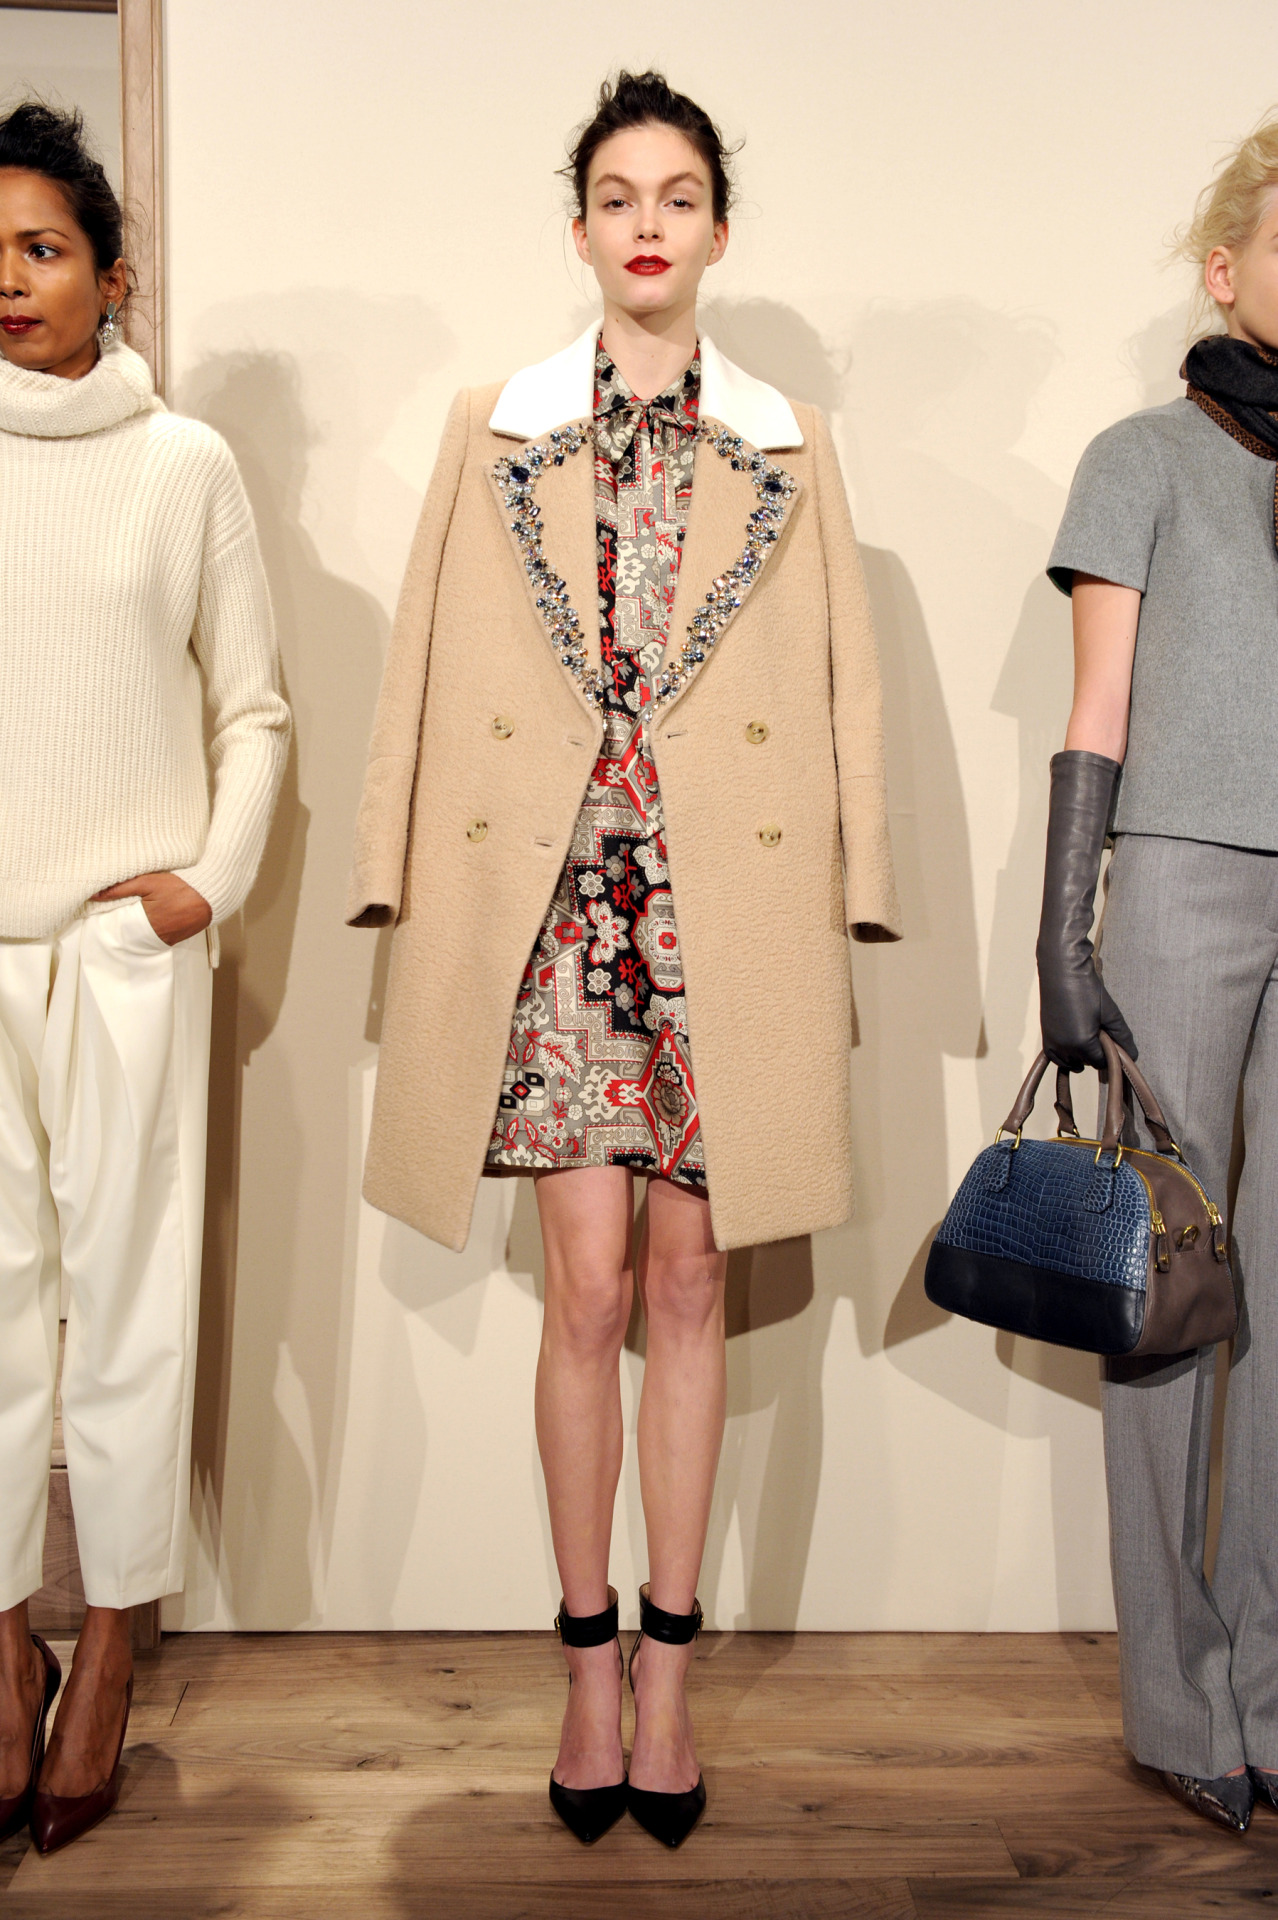 J.Crew - Fall 2013 / Photographer: Anthea Simms See the entire collection.